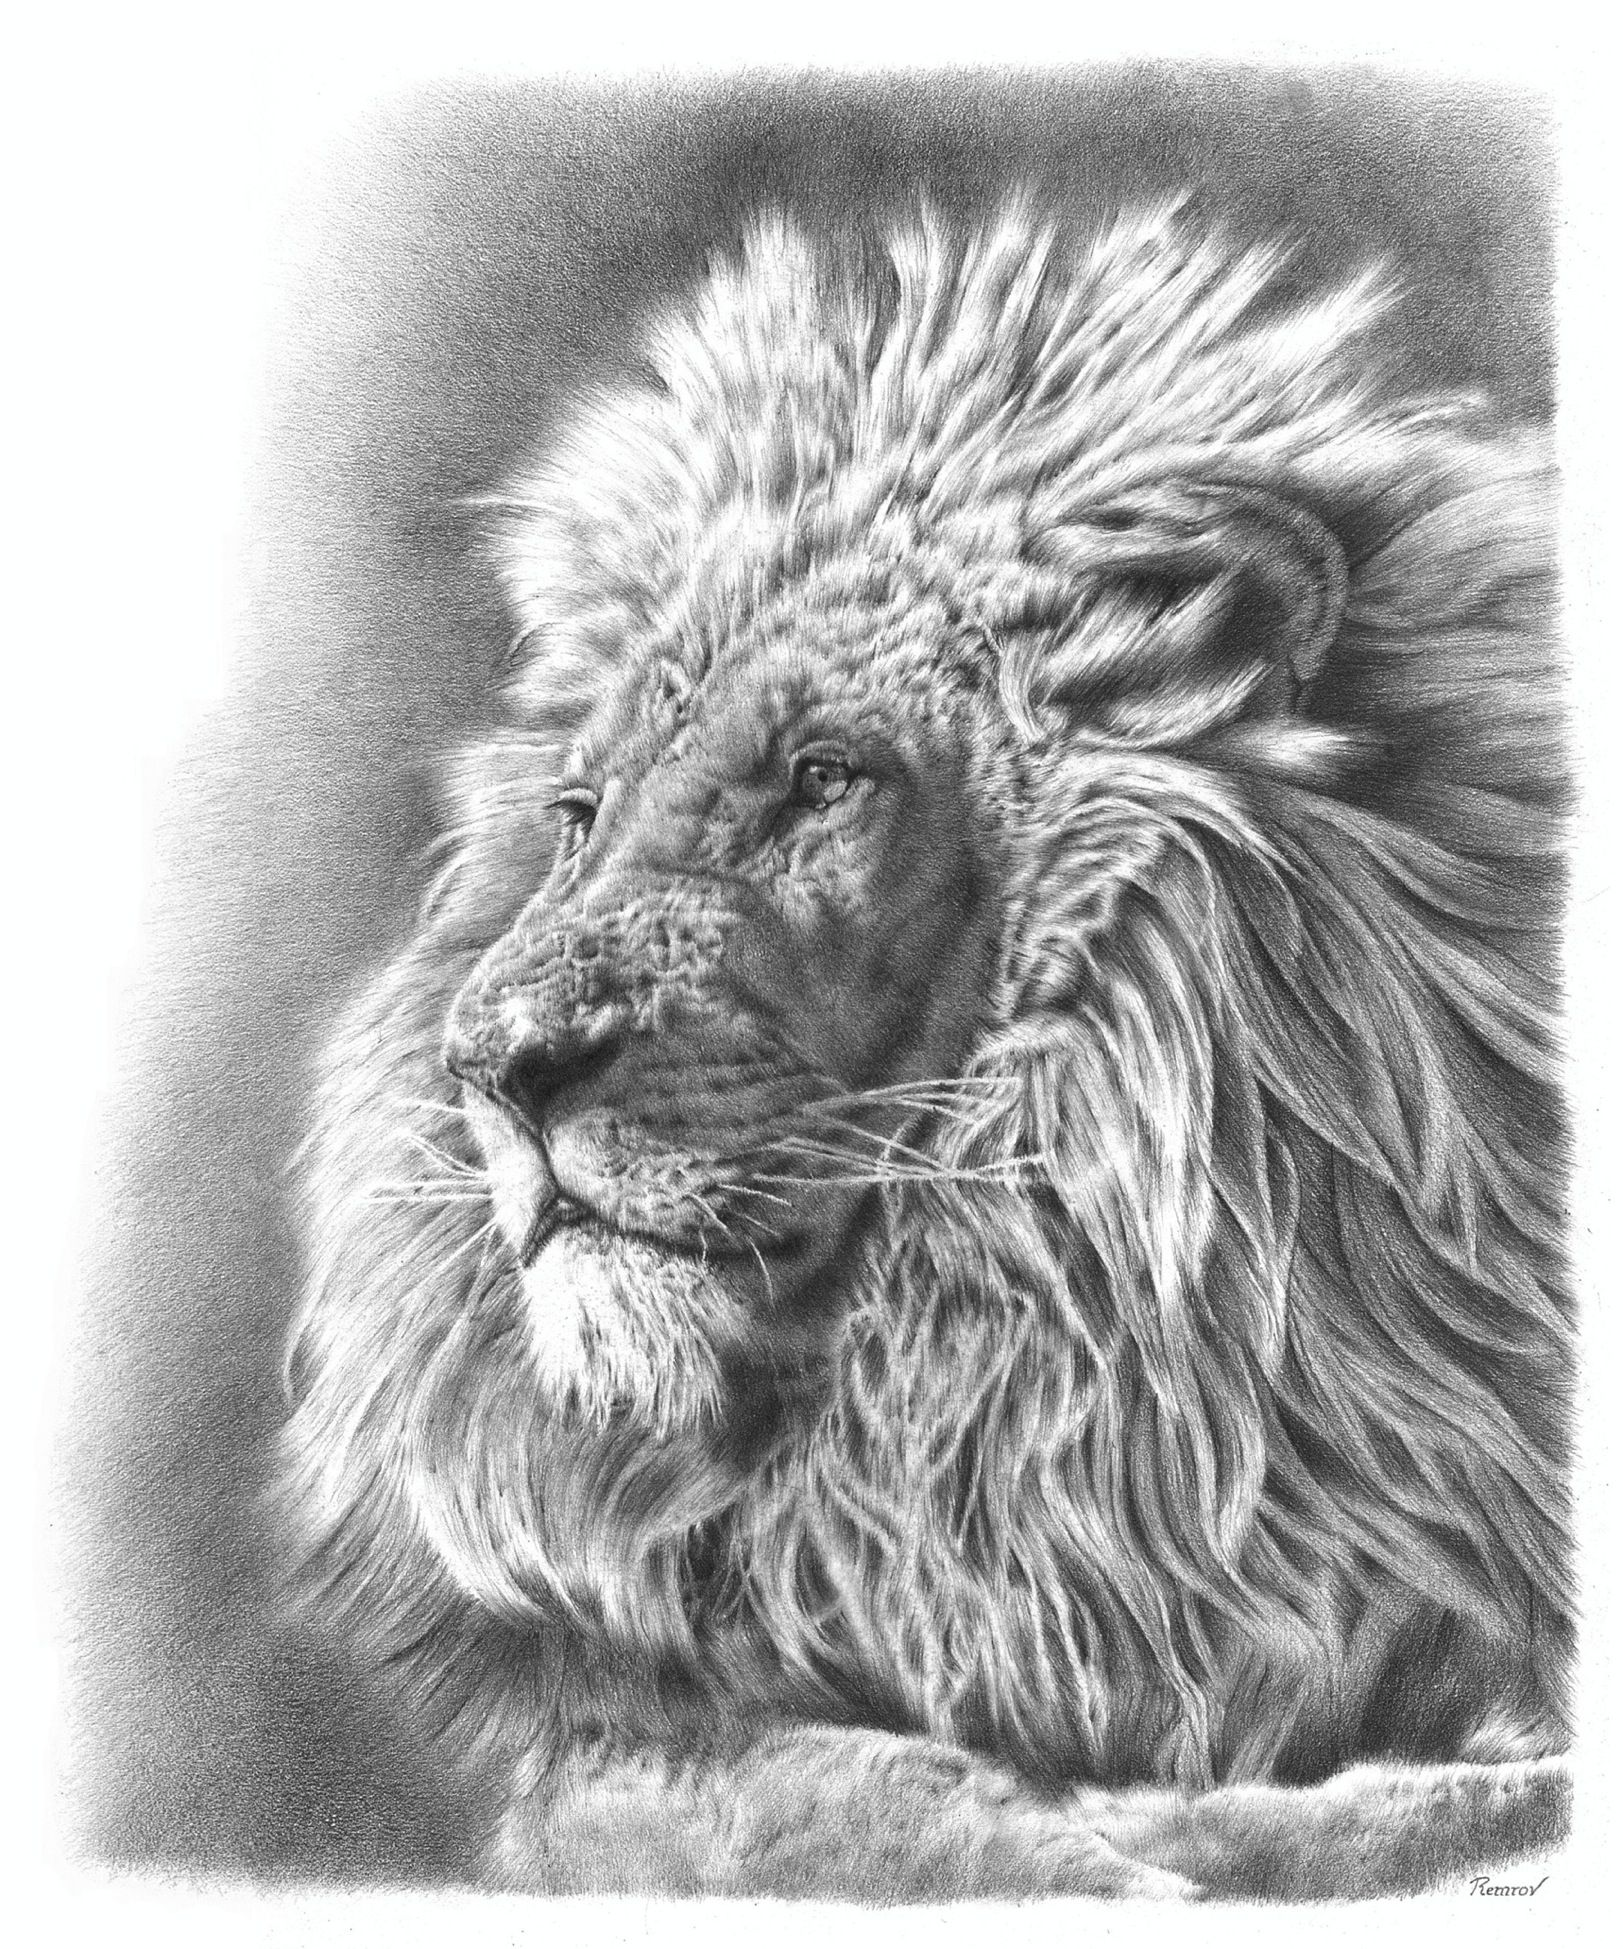 A photorealistic pencil drawing of a lion pencil drawings pencil